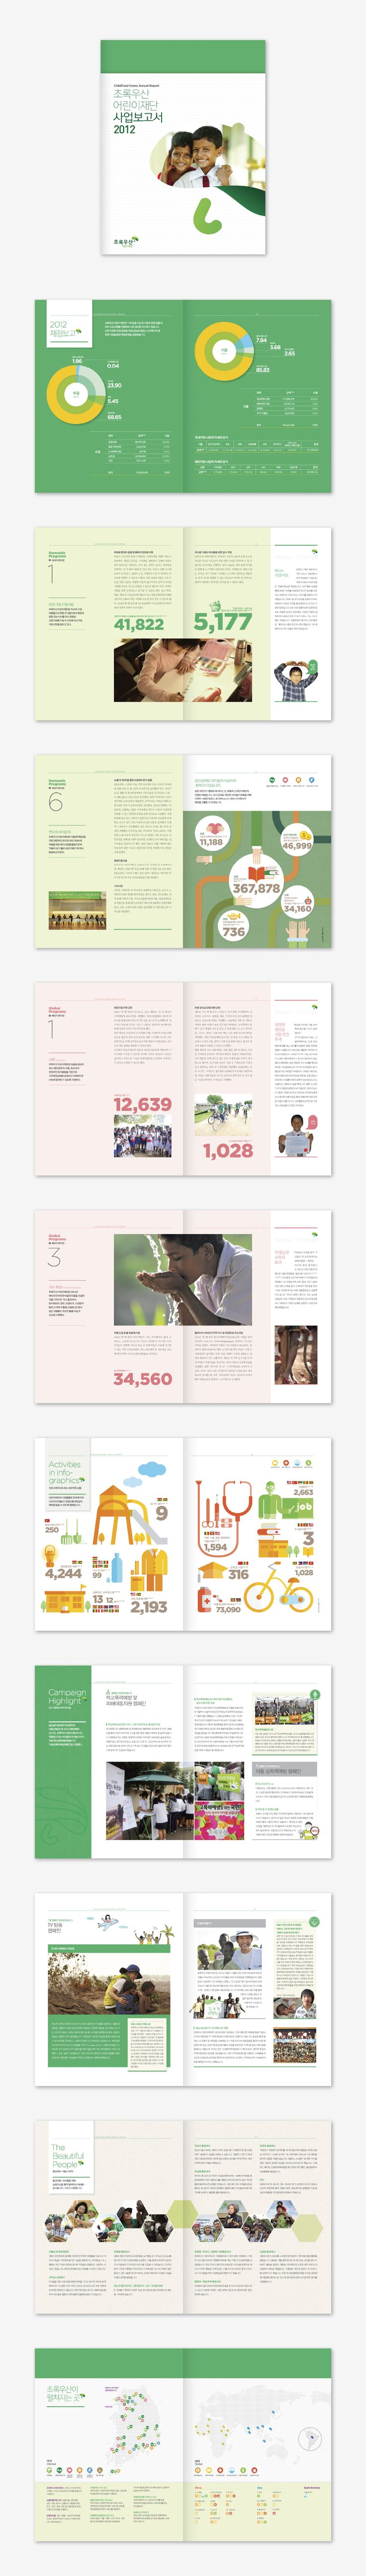 childfund_layout